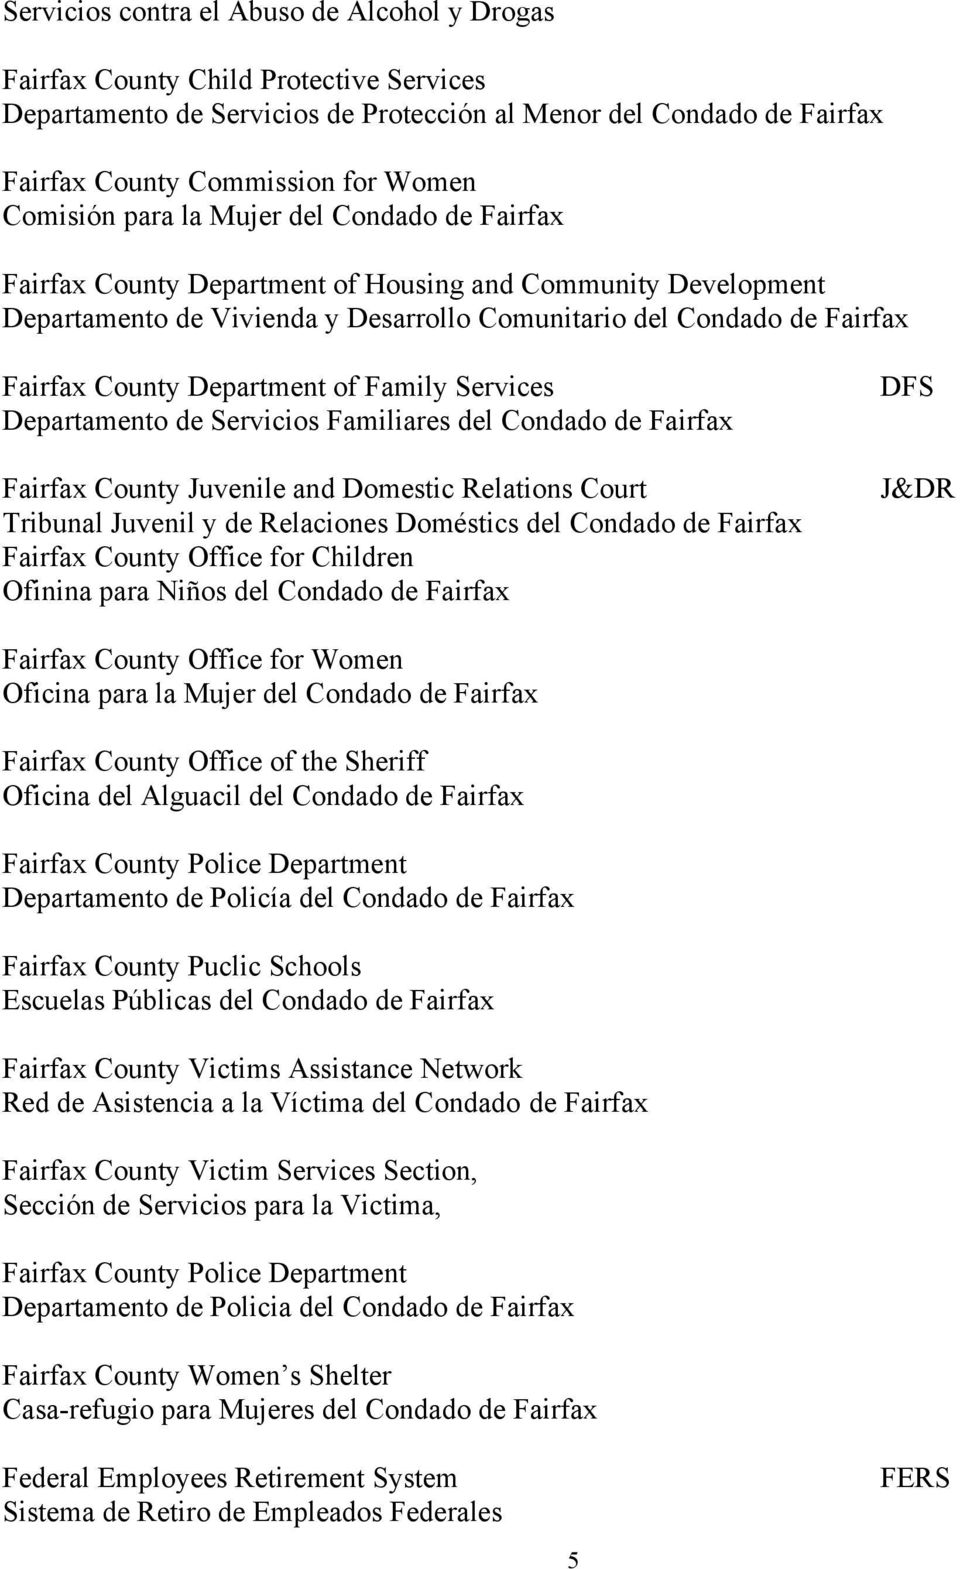 Department of Family Services Departamento de Servicios Familiares del Condado de Fairfax Fairfax County Juvenile and Domestic Relations Court Tribunal Juvenil y de Relaciones Doméstics del Condado